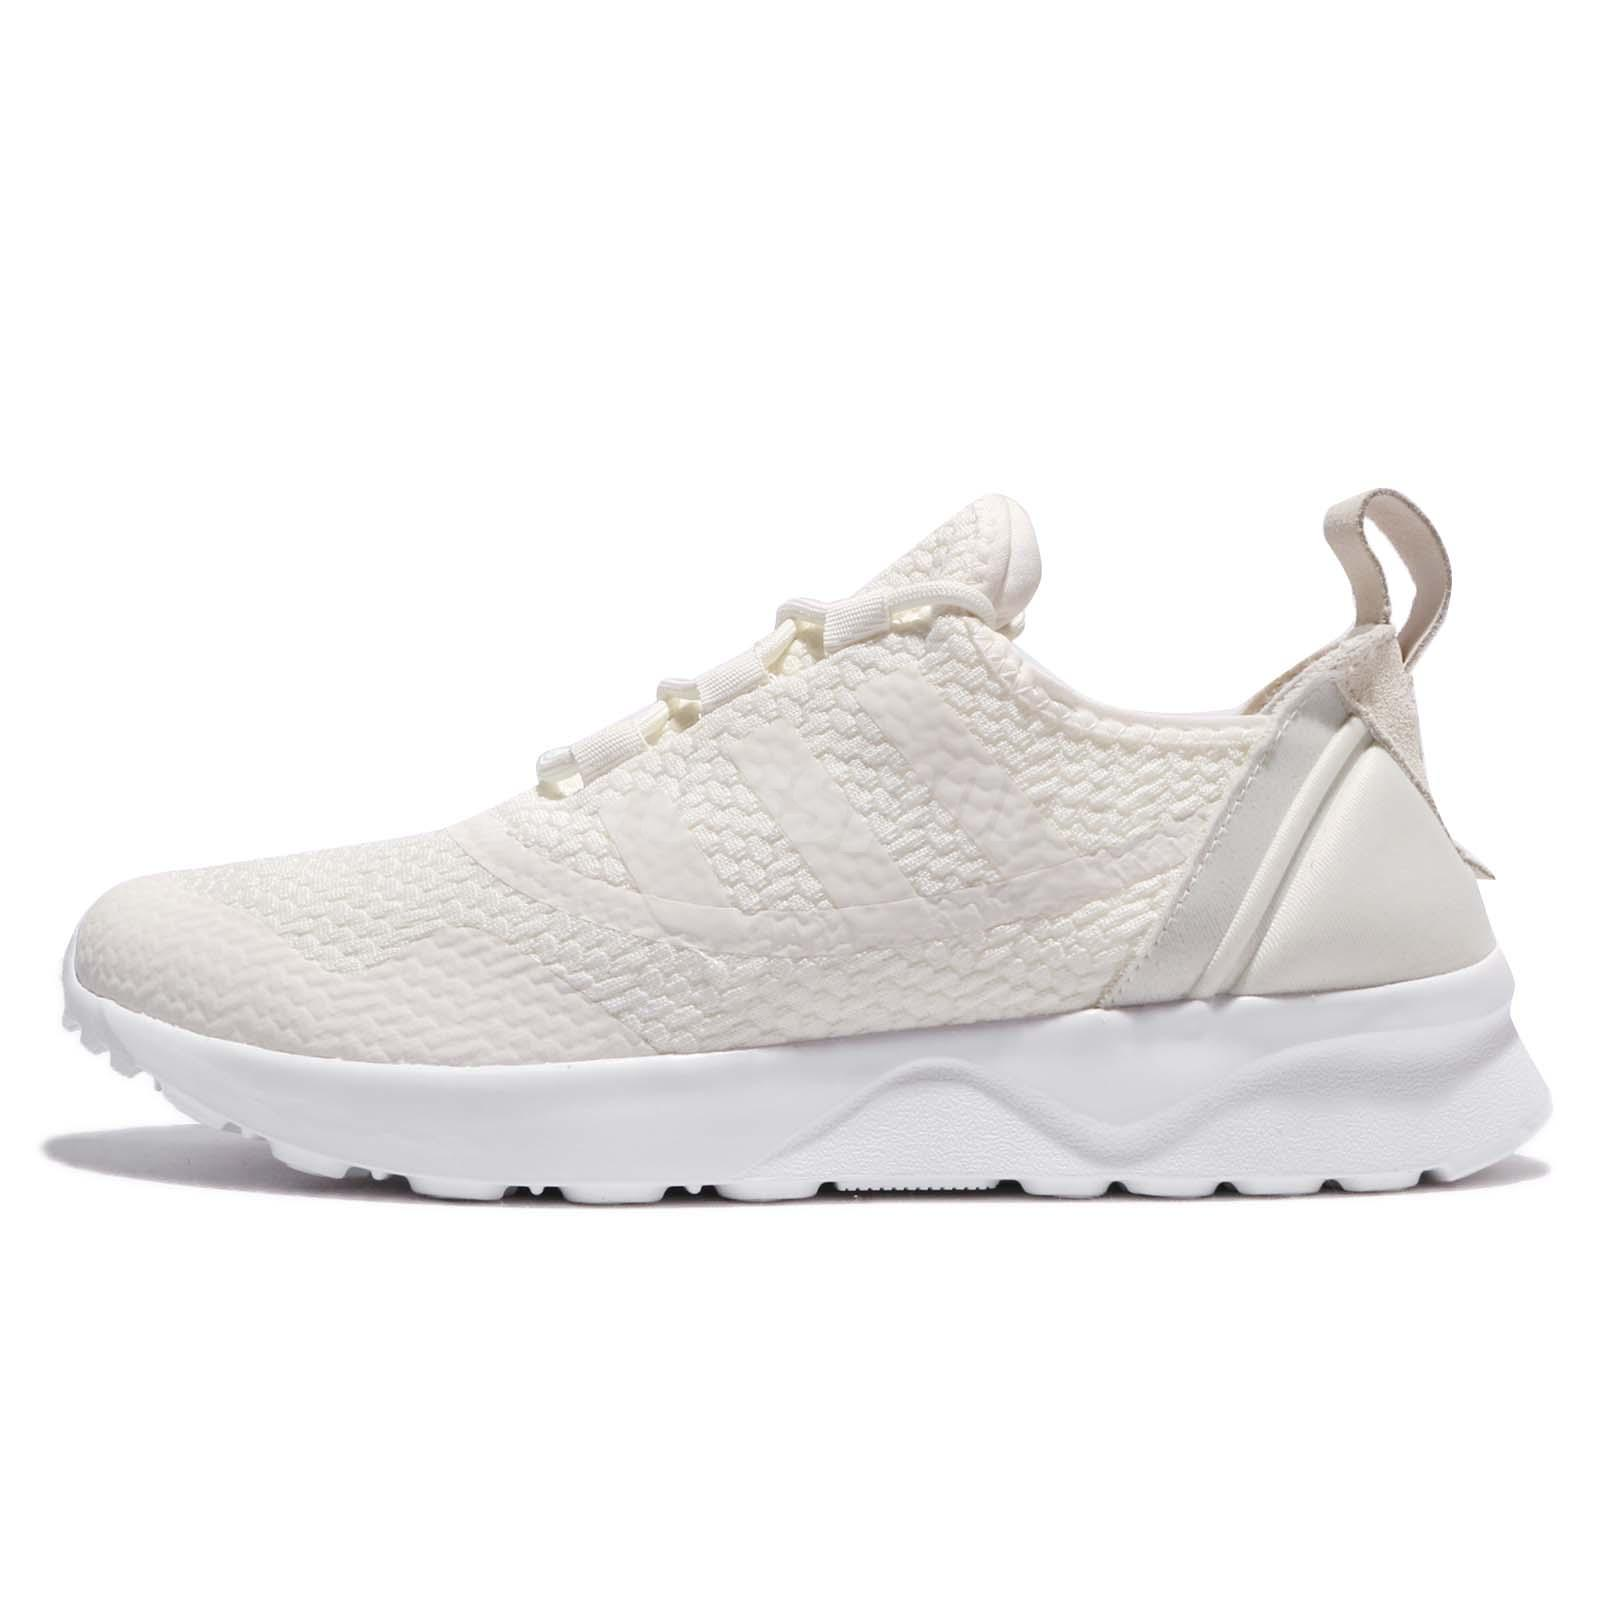 eb9bc00b3 spain adidas originals zx flux adv virtue w off white women running shoes  cg4092 4e68c 796ef